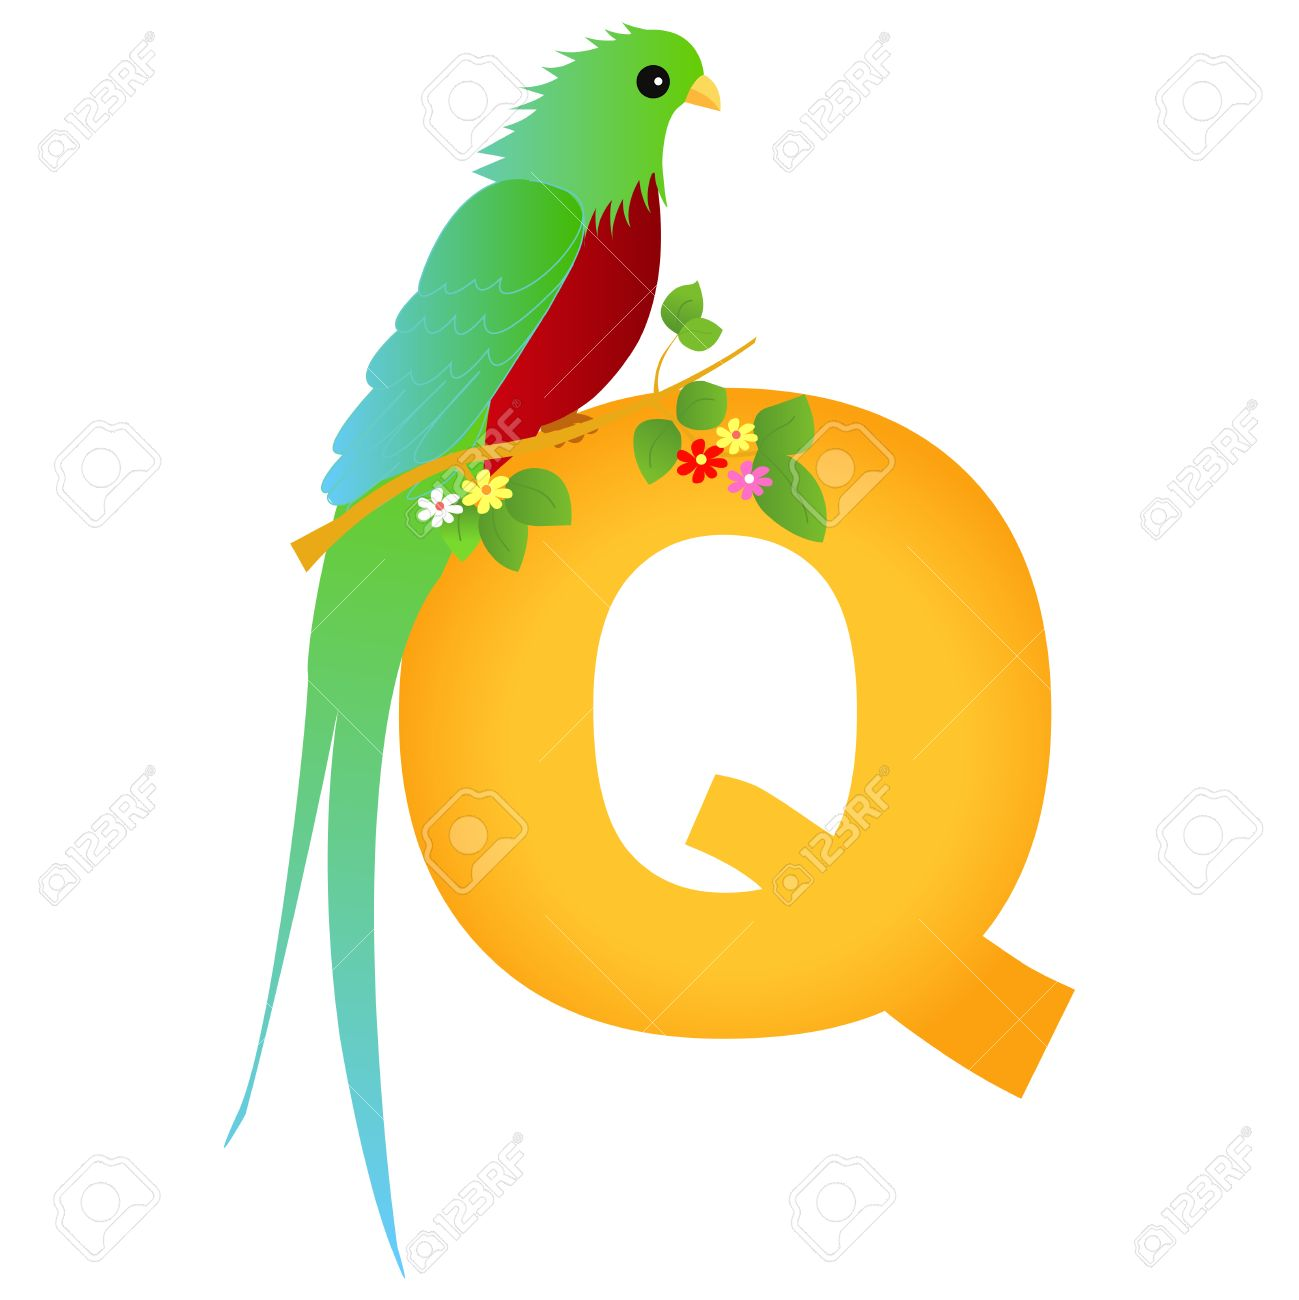 Colorful Animal Alphabet Letter Q With A Cute Quetzal Flash Card 1299x1300